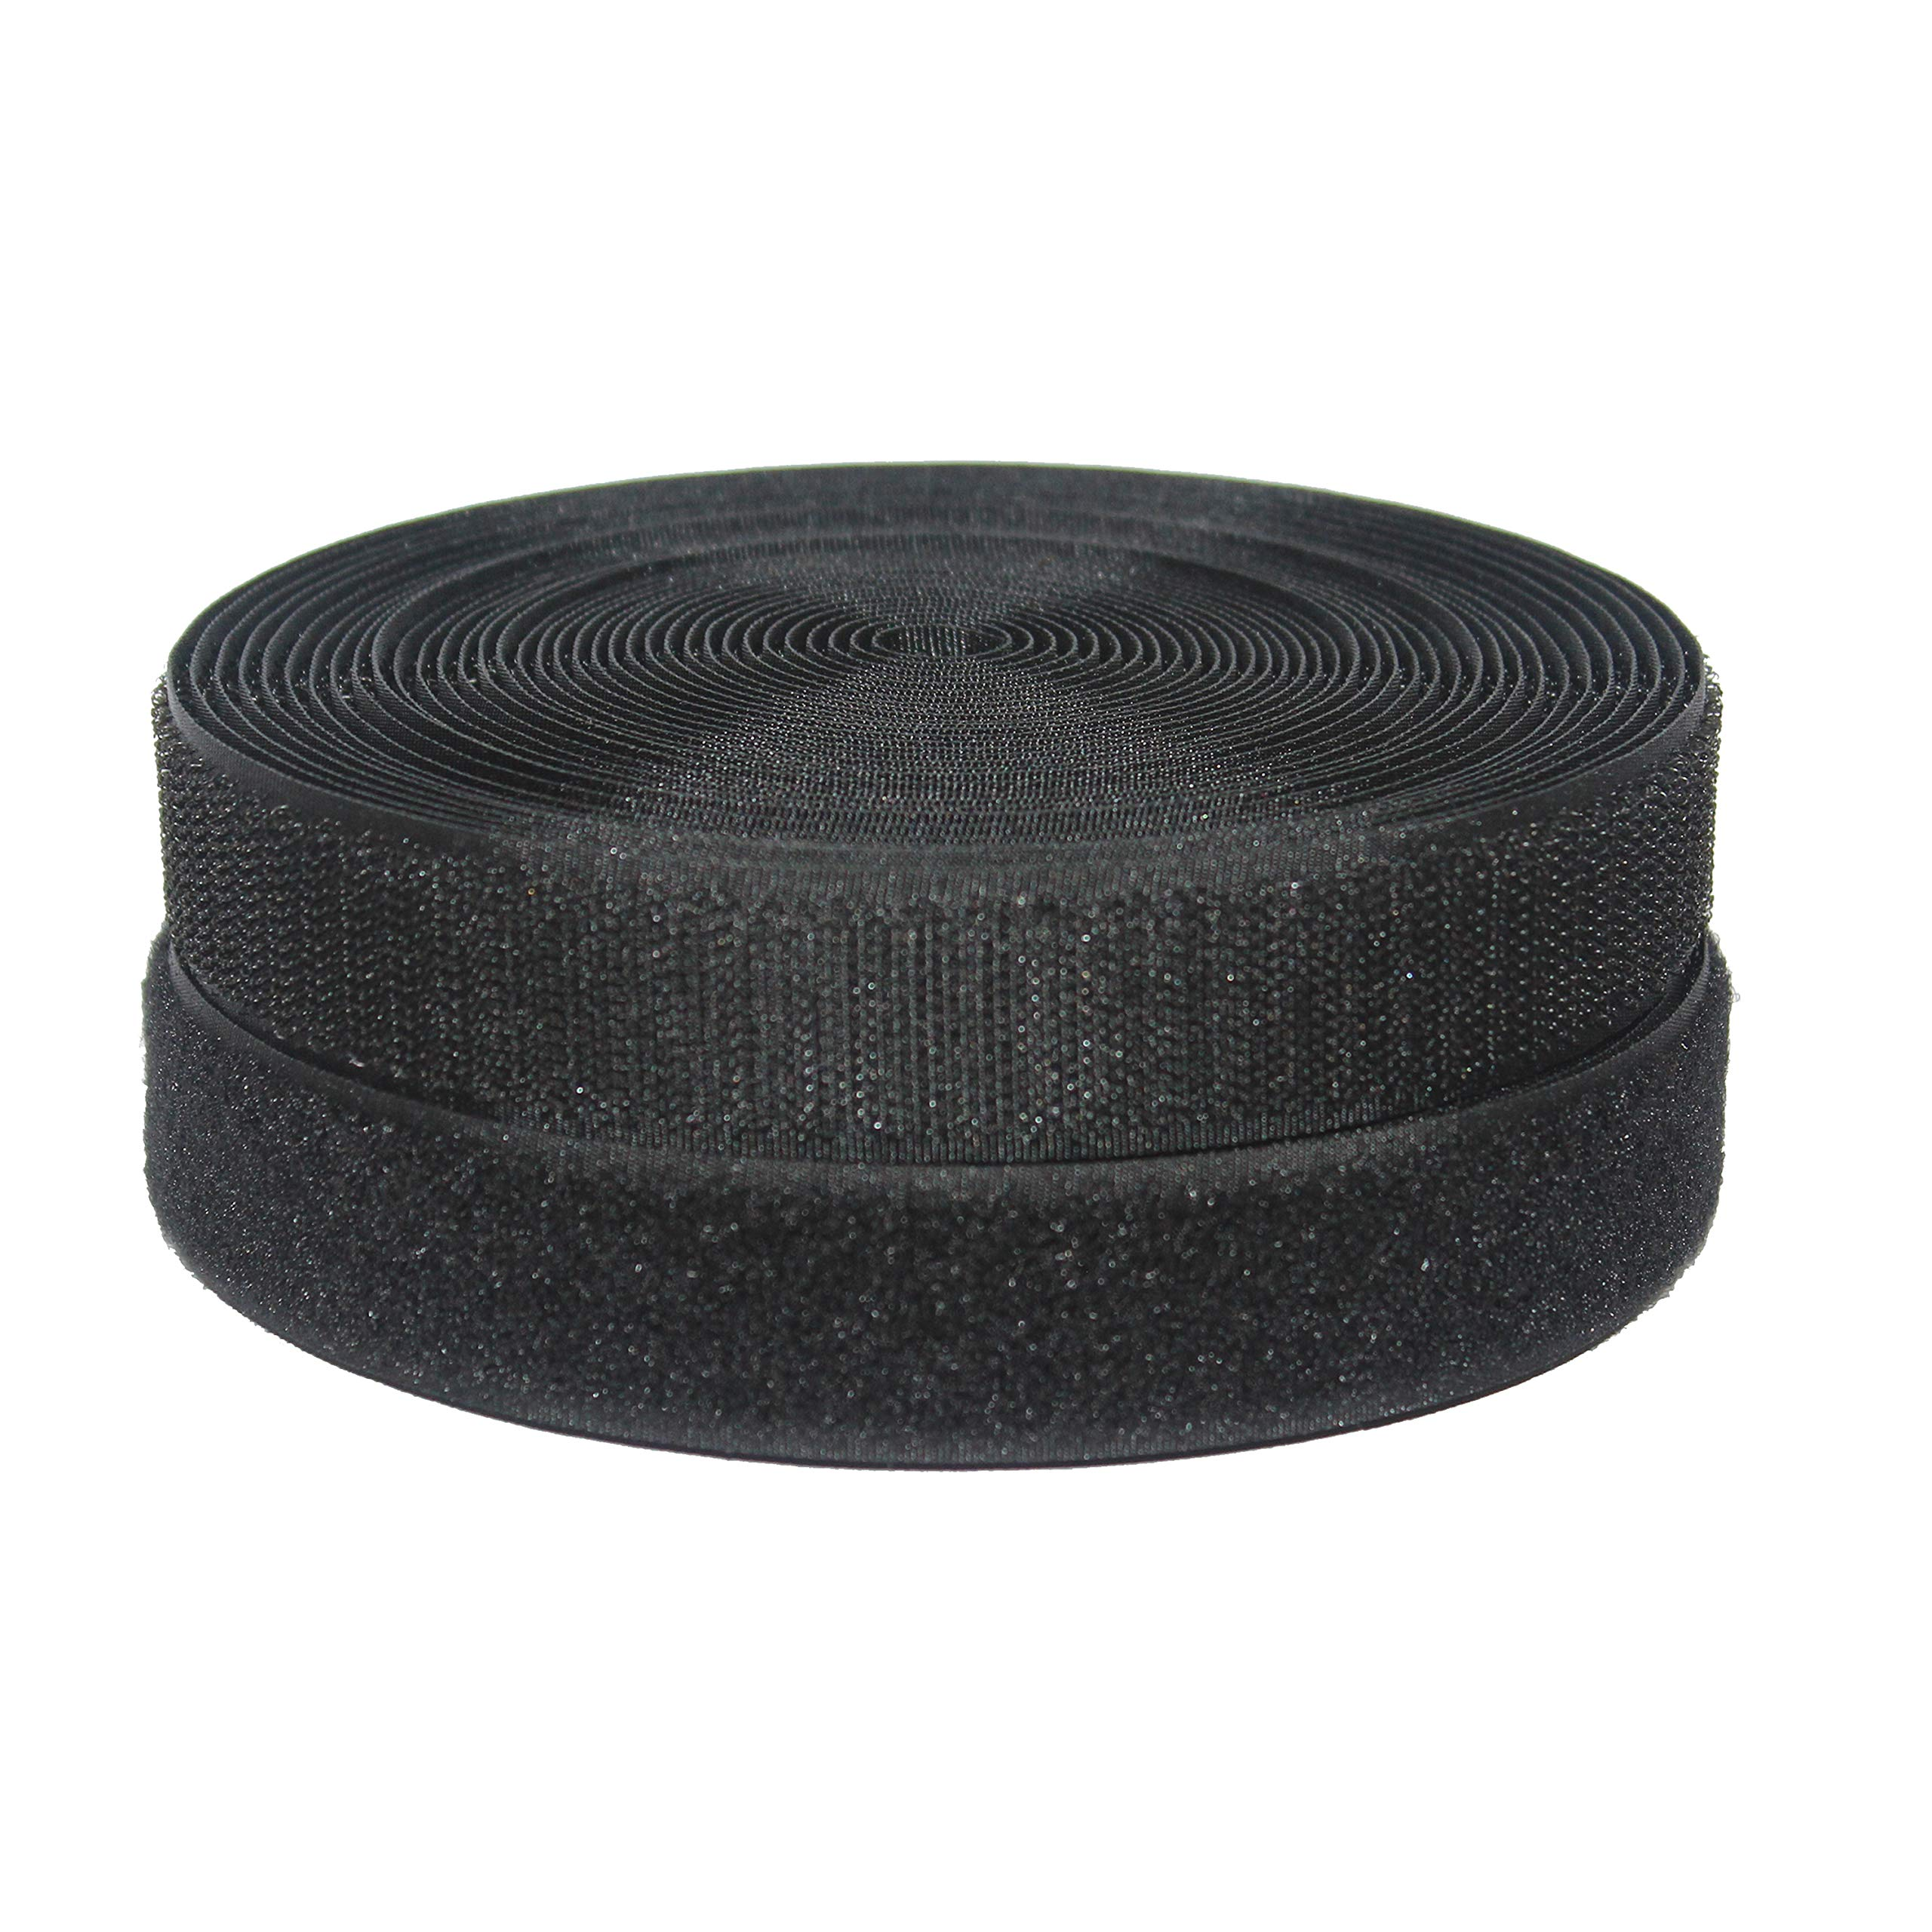 HUAYY 1 inches Width 9 Yards Length,Sew on Hook and Loop Style,Non-Adhesive Nylon Strips Fabric,Black (1in x 9yd)